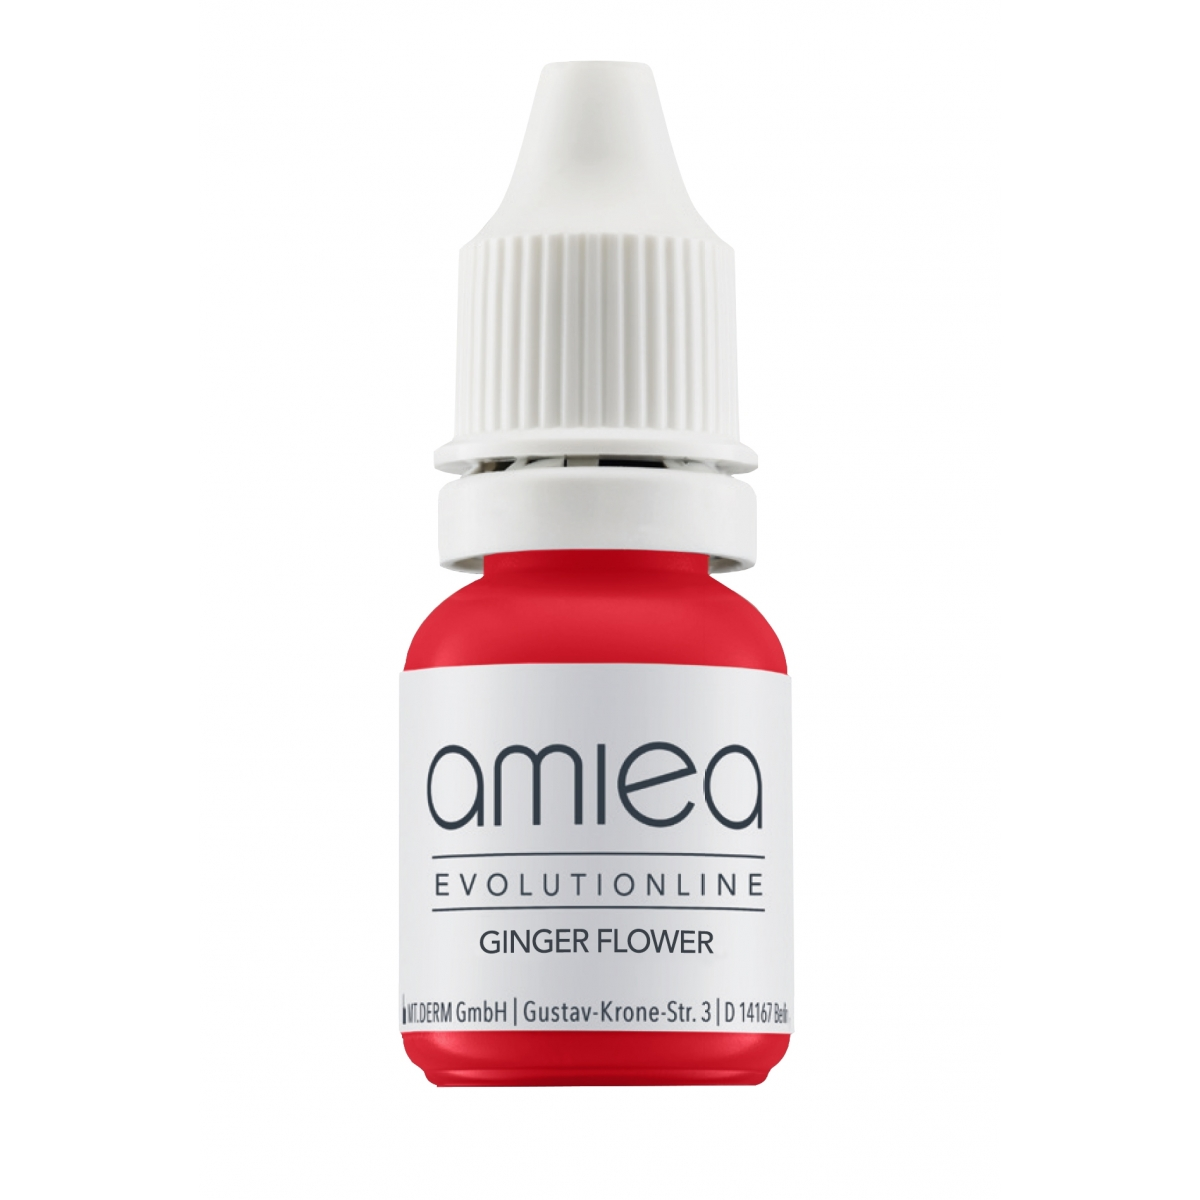 EVOLUTION LINE (10ml) - PIGMENT GINGER FLOWER AMIEA EVOLUTIONLINE (10 ml)